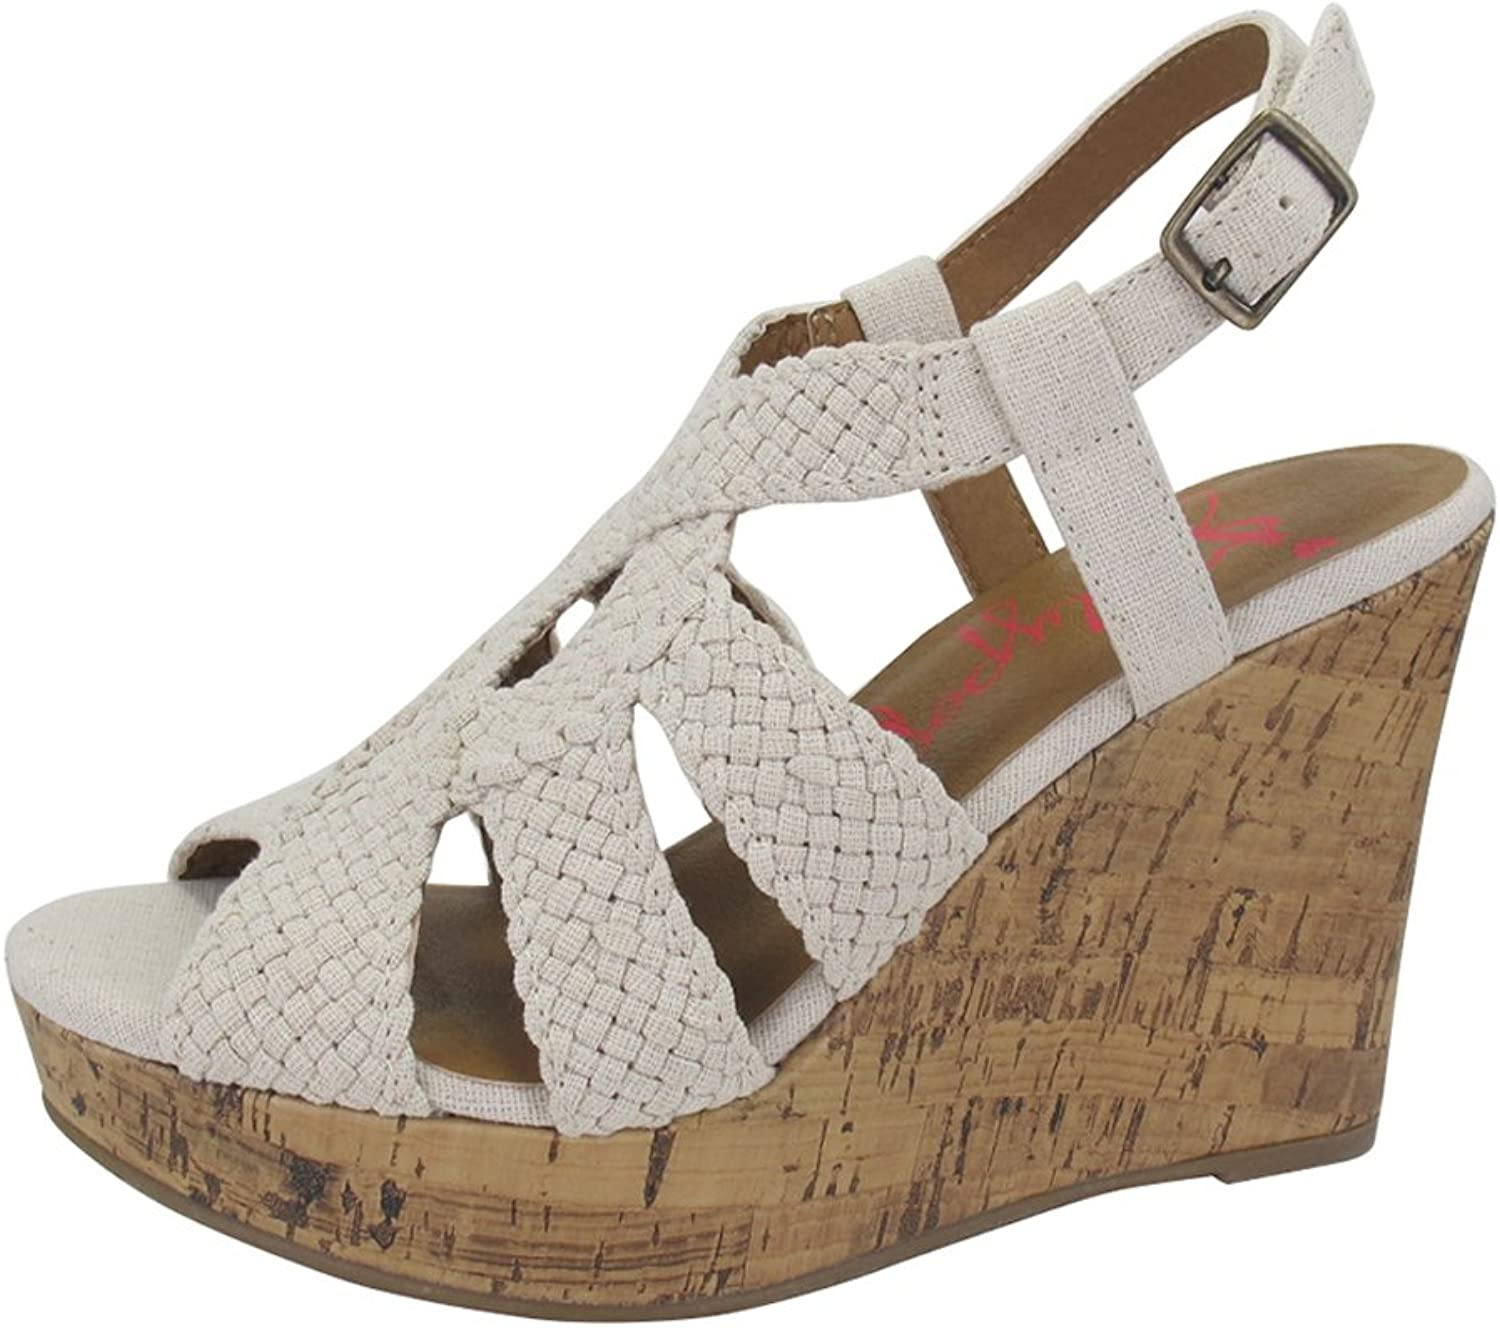 Jellypop Fraisia Womens Wedge Sandals